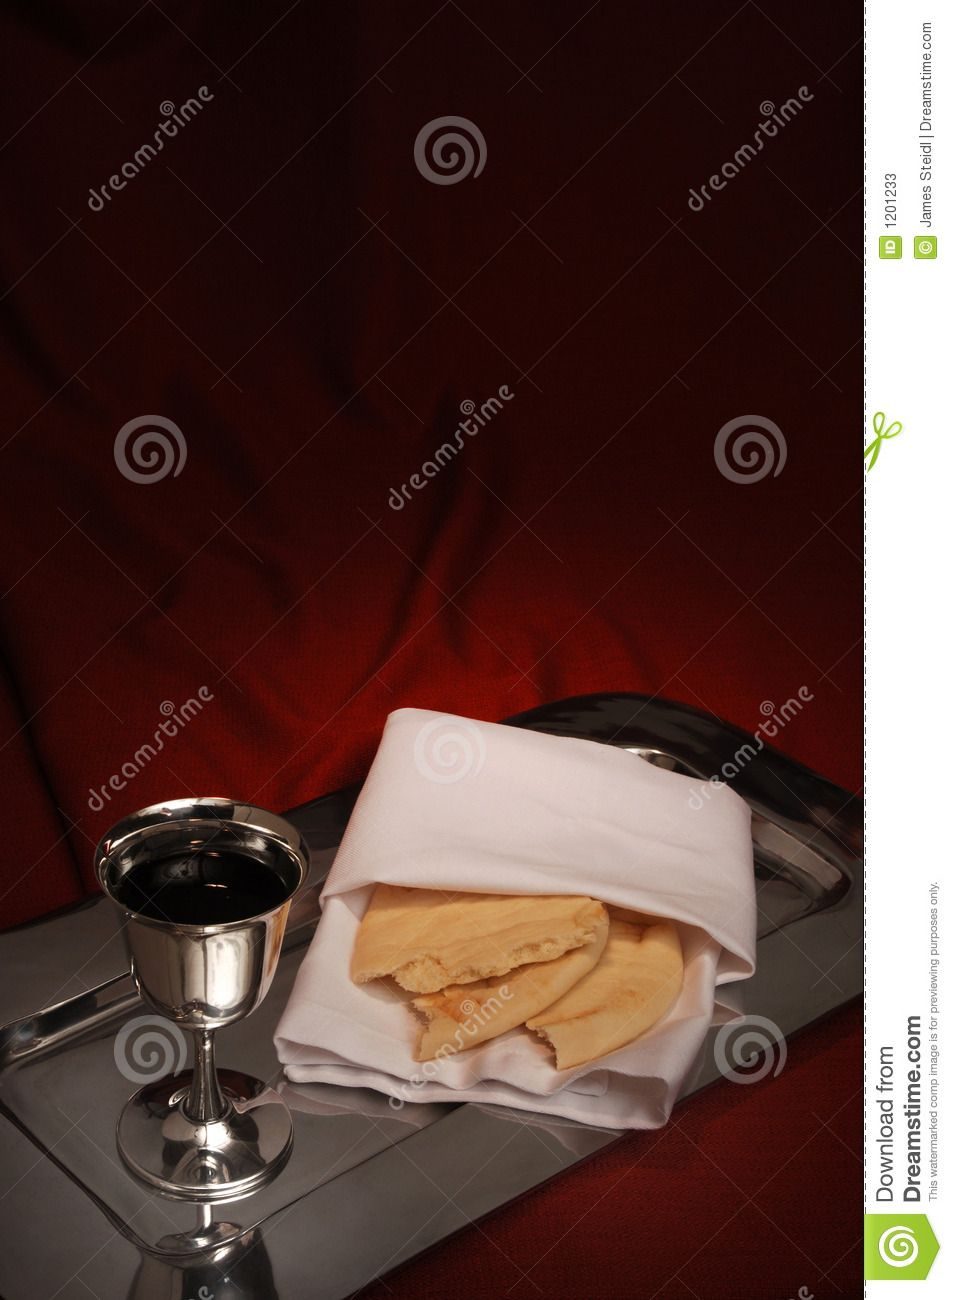 Communion Cup And Bread On Red Fabric Sponsored Advertisement Ad Cup Red Bread Communion In 2020 Communion Cups Red Fabric Communion